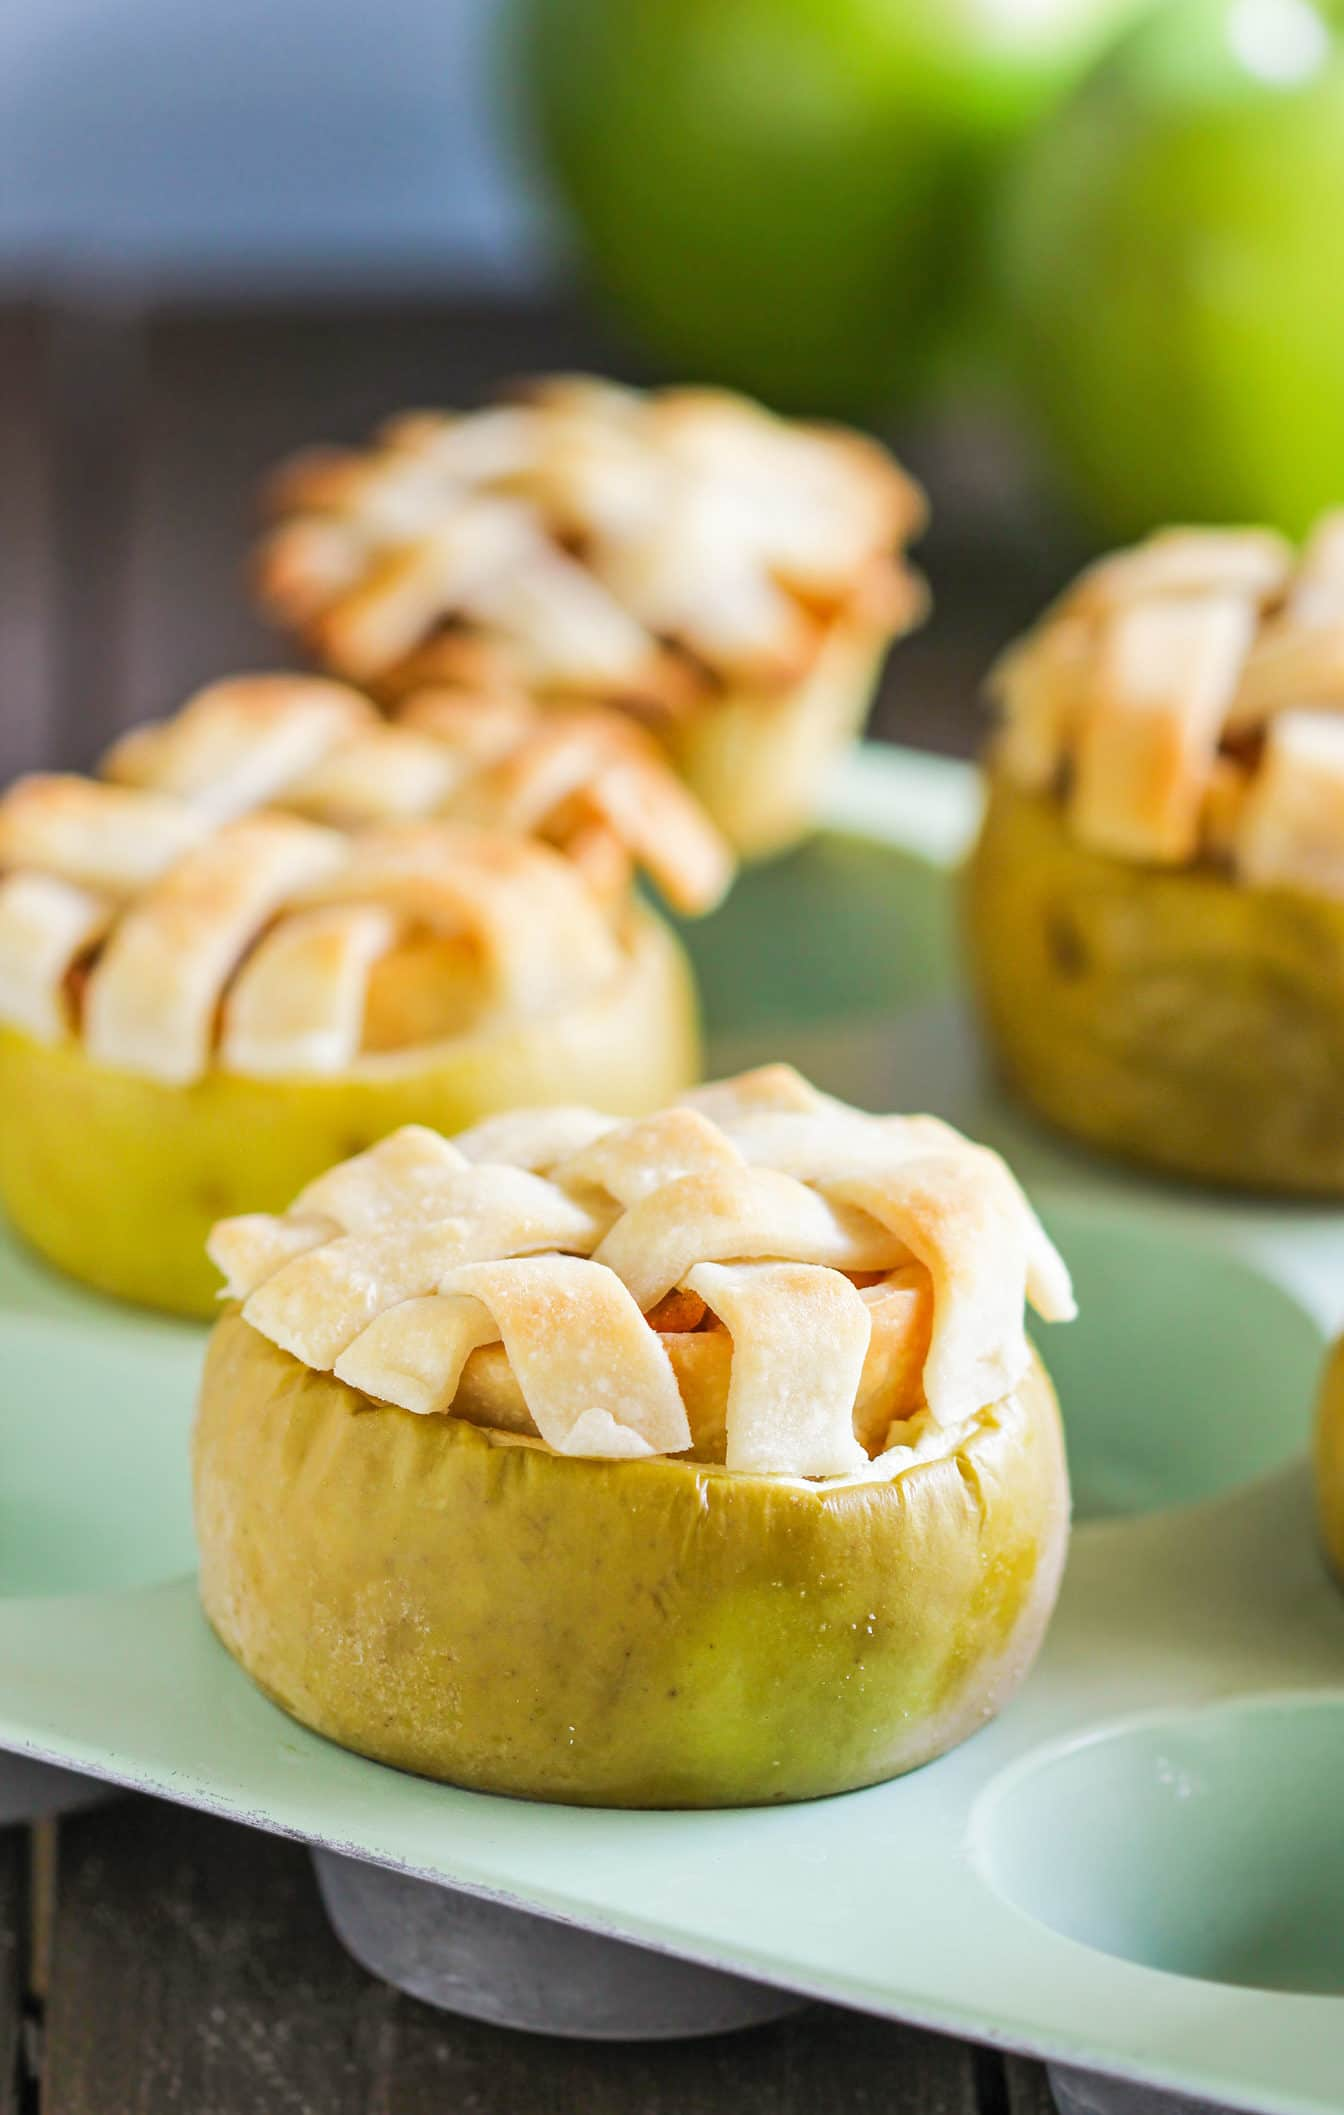 Healthy Apple Pies served IN THE APPLE! (low fat, low sugar, vegan)